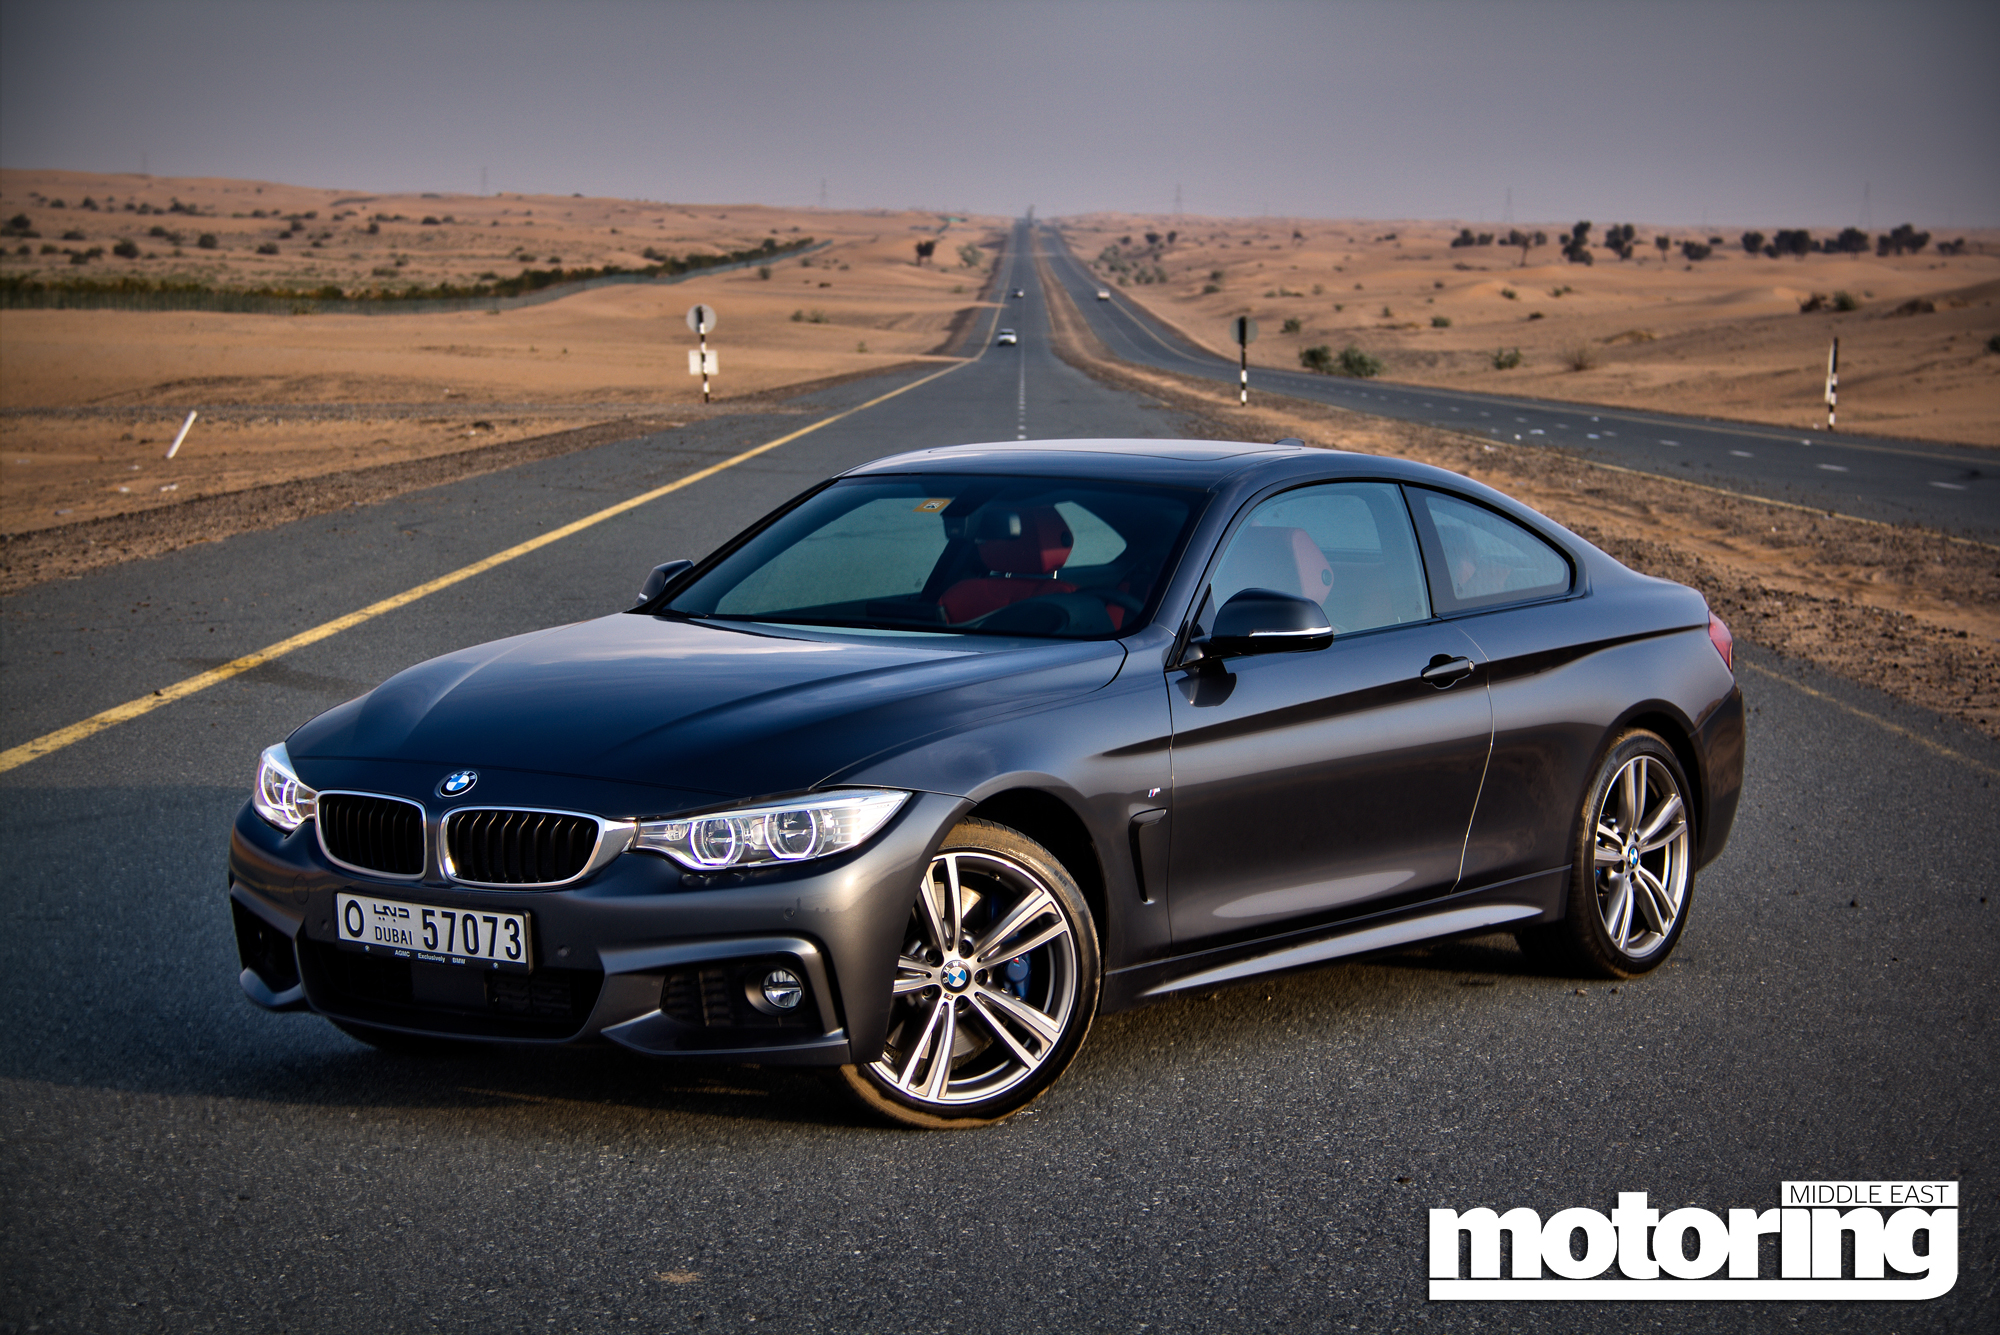 2014 bmw 435i reviewmotoring middle east: car news, reviews and